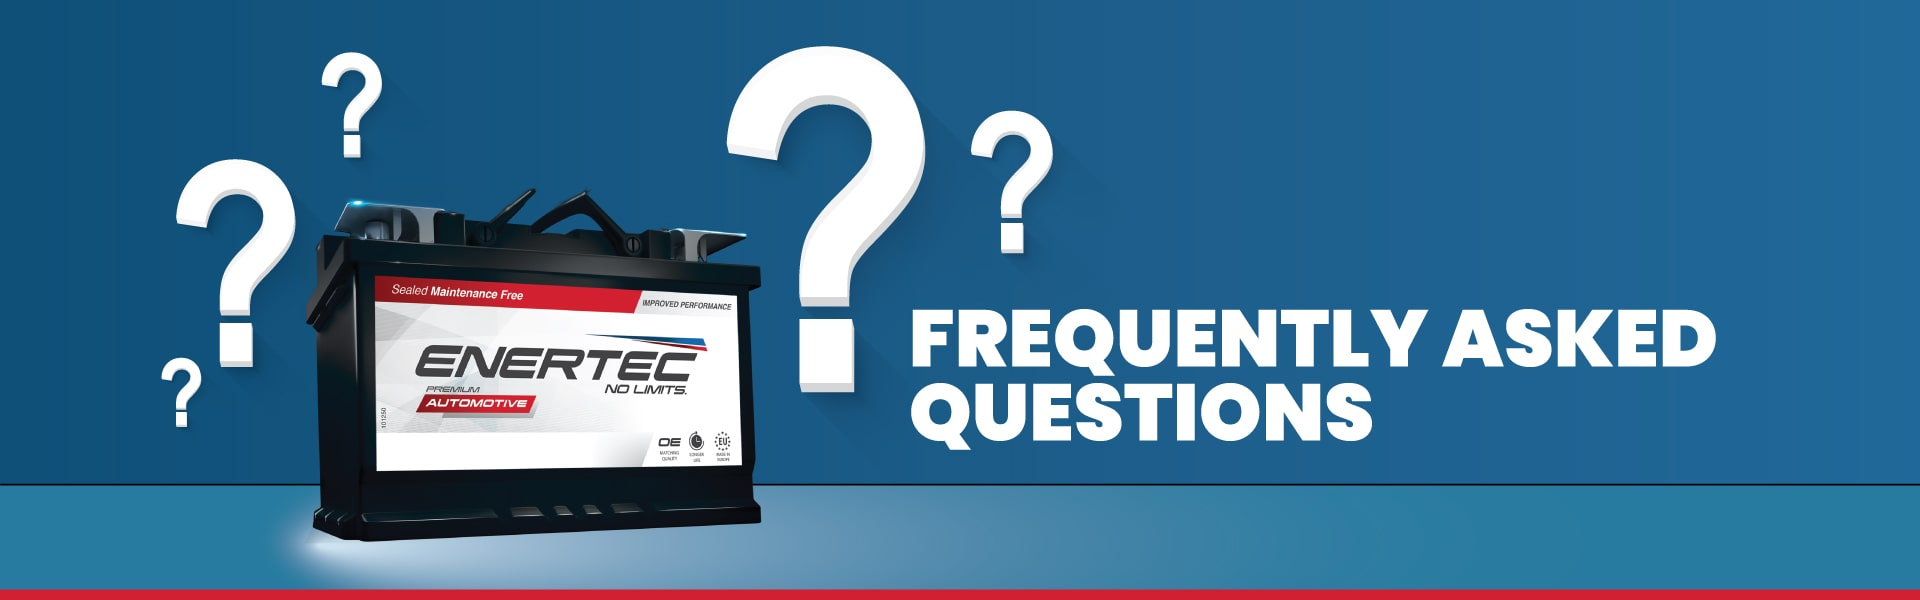 Frequently Asked Questions at Enertec Batteries